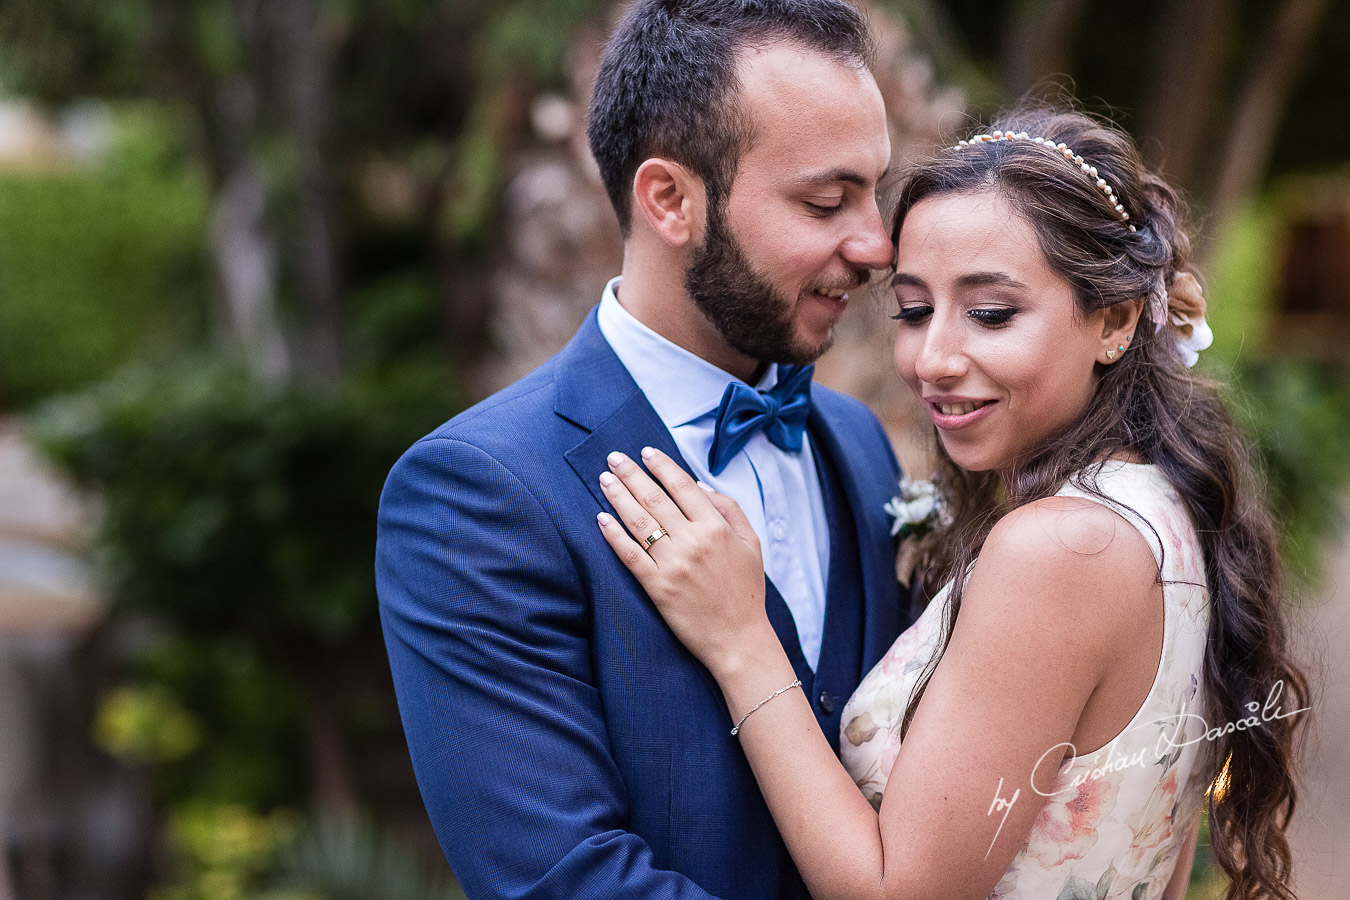 Portrait with the bride and groom photographed as part of an Exclusive Wedding photography at Grand Resort Limassol, captured by Cyprus Wedding Photographer Cristian Dascalu.